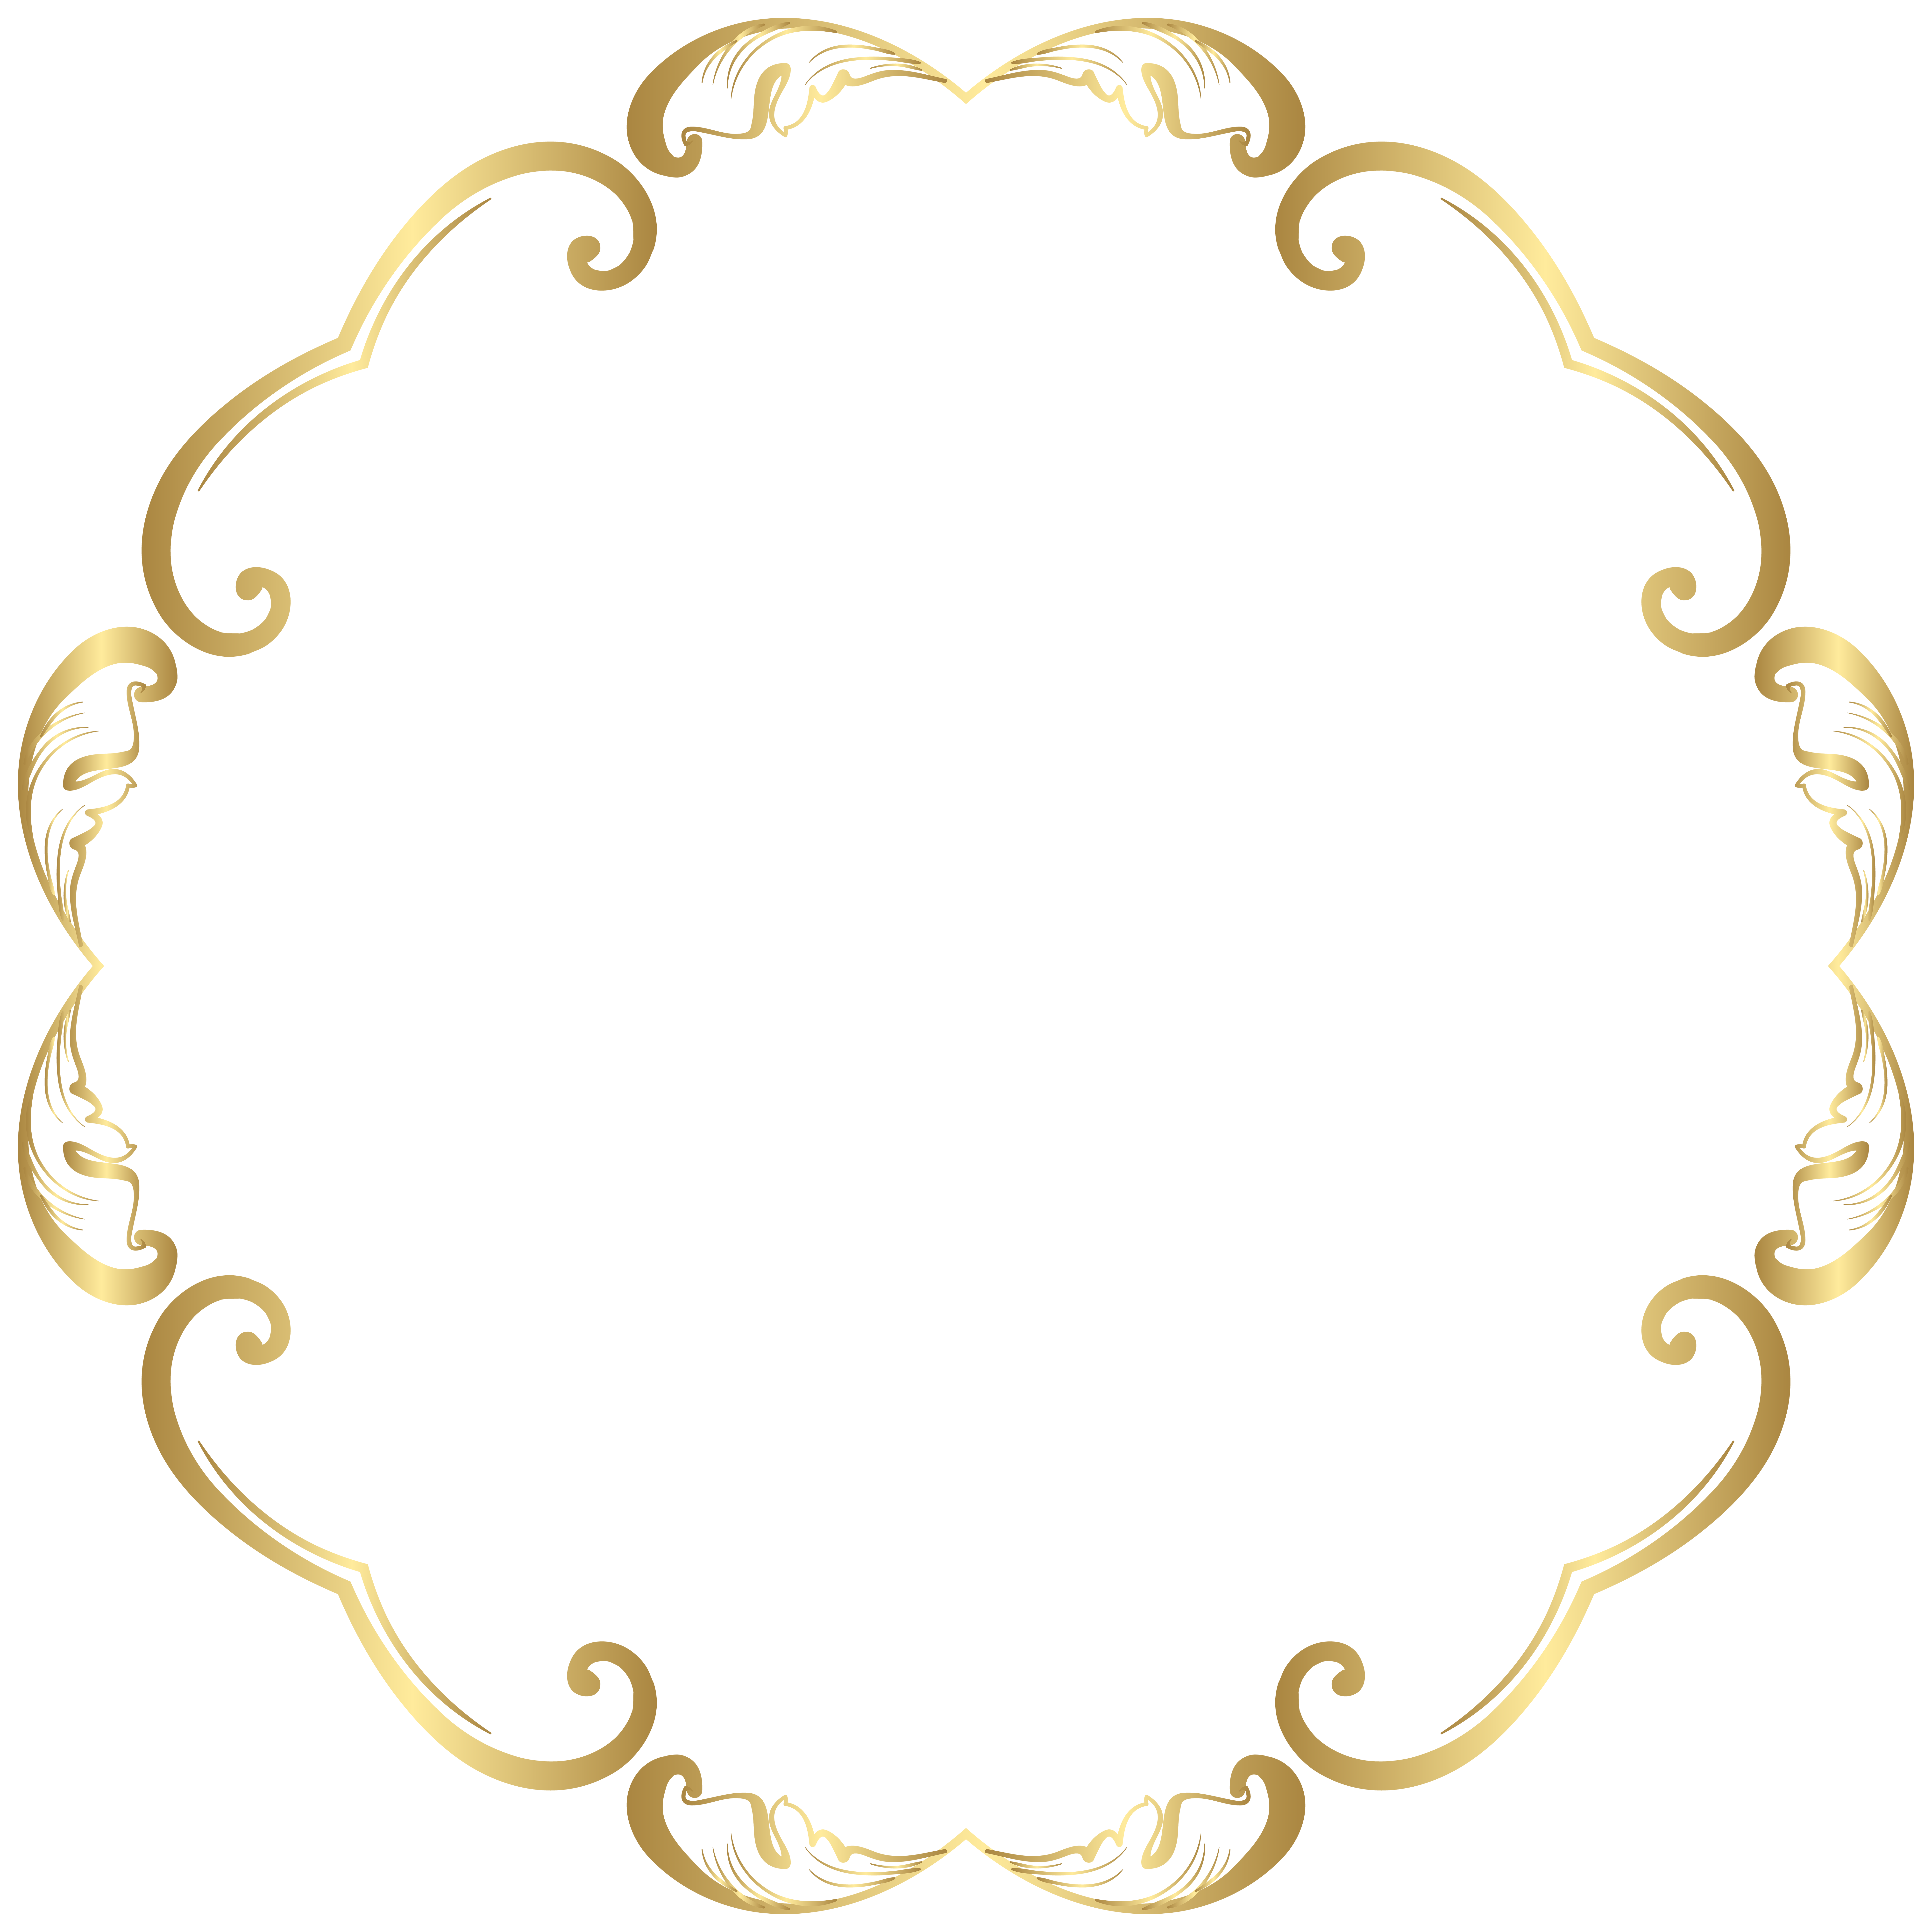 Gold money chain clipart with transparent backound banner black and white library Decorative Round Border Frame Transparent Image | Gallery ... banner black and white library